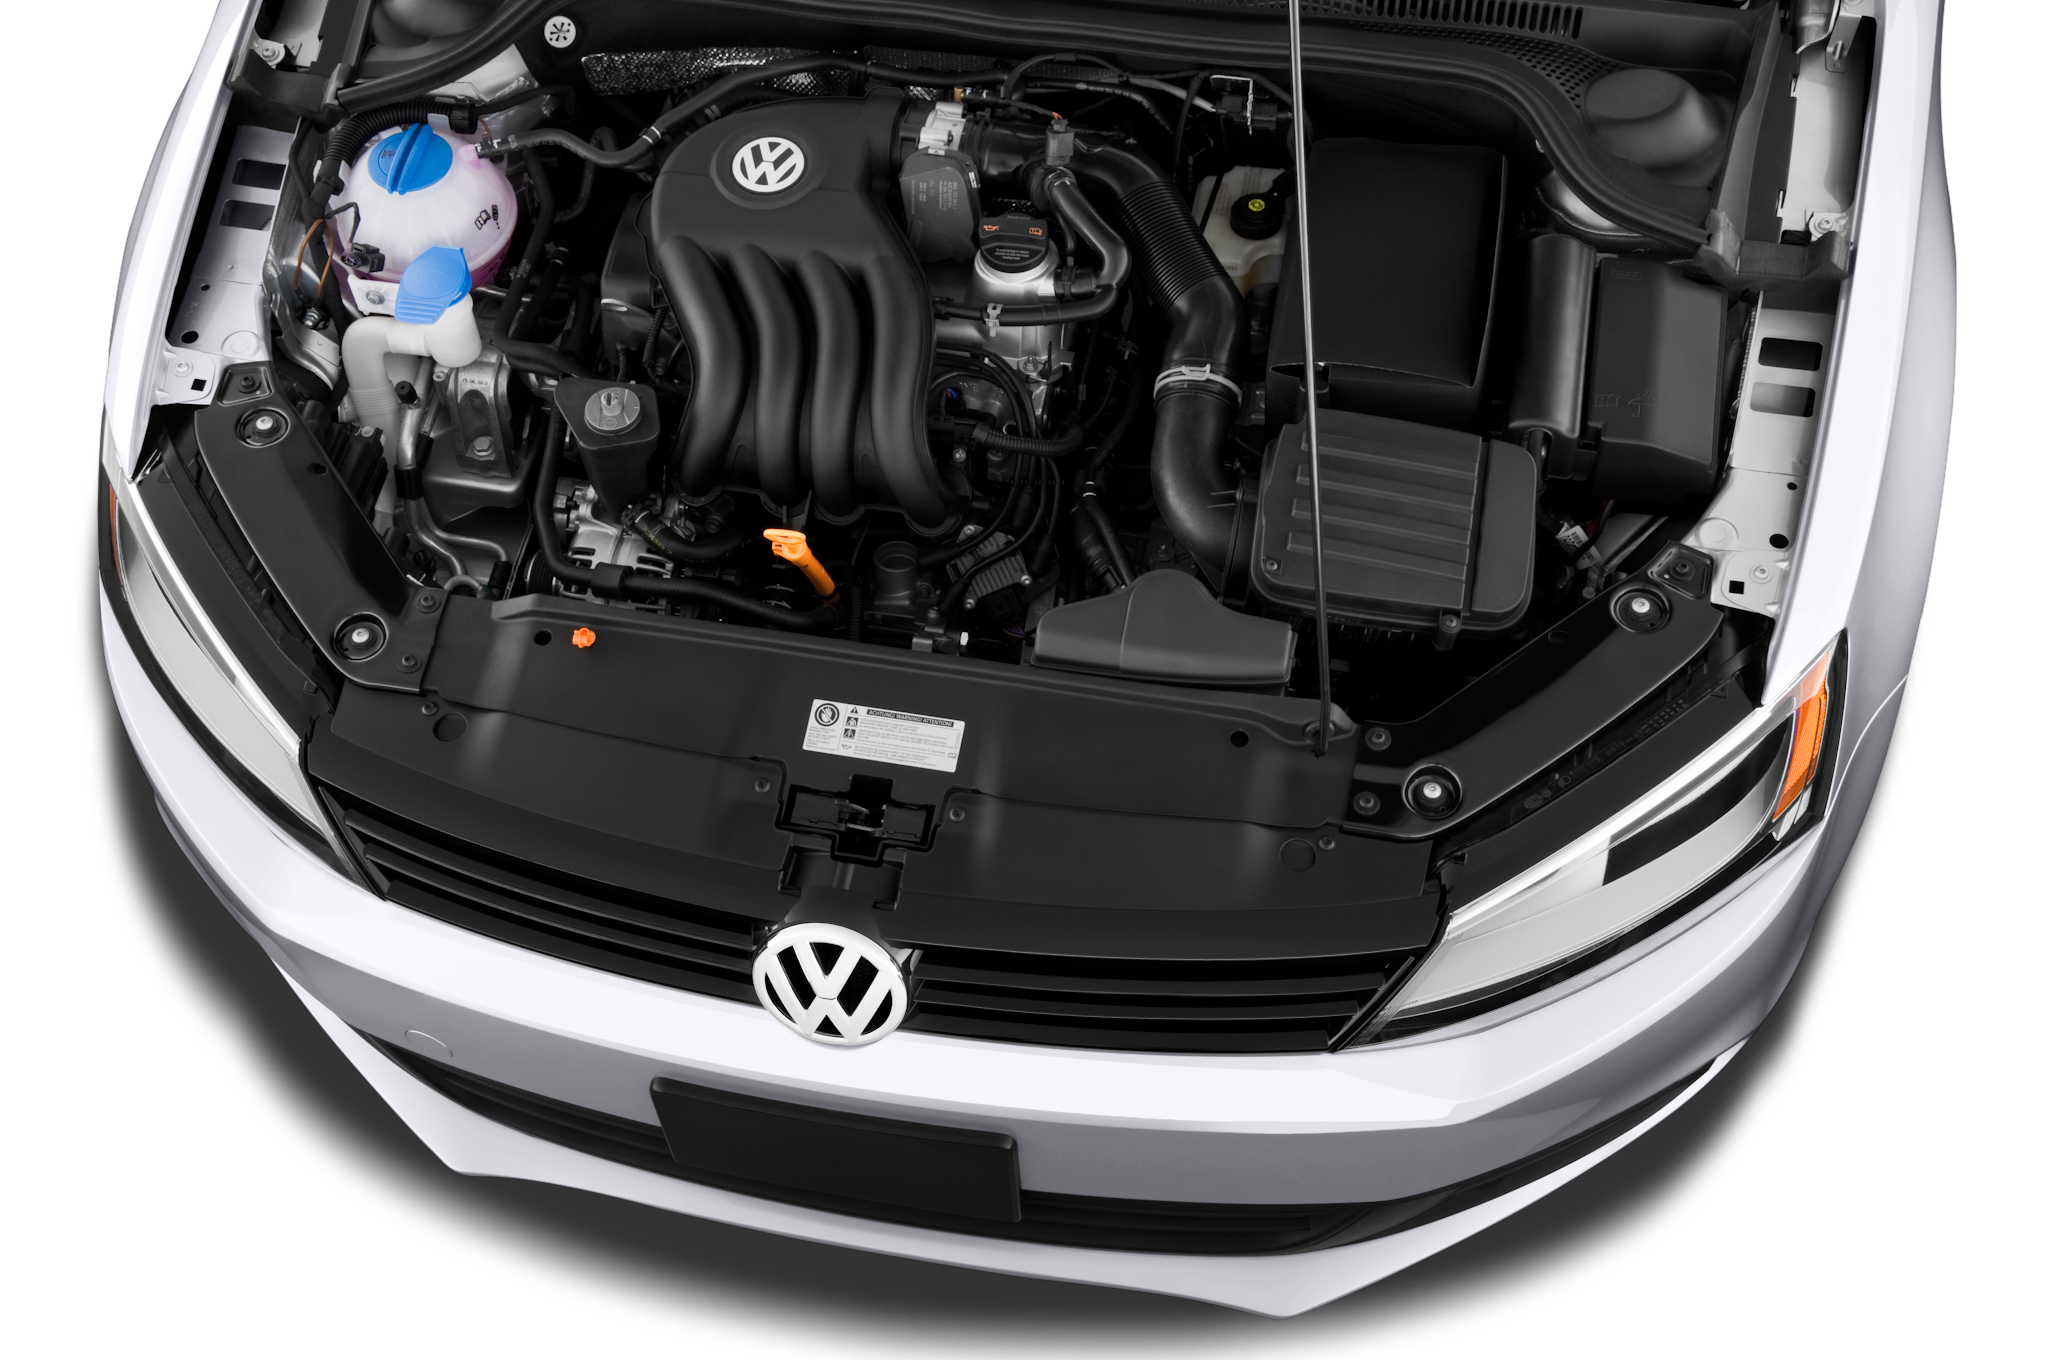 Volkswagen Jetta 2 0 Engine Diagram Cold Engine